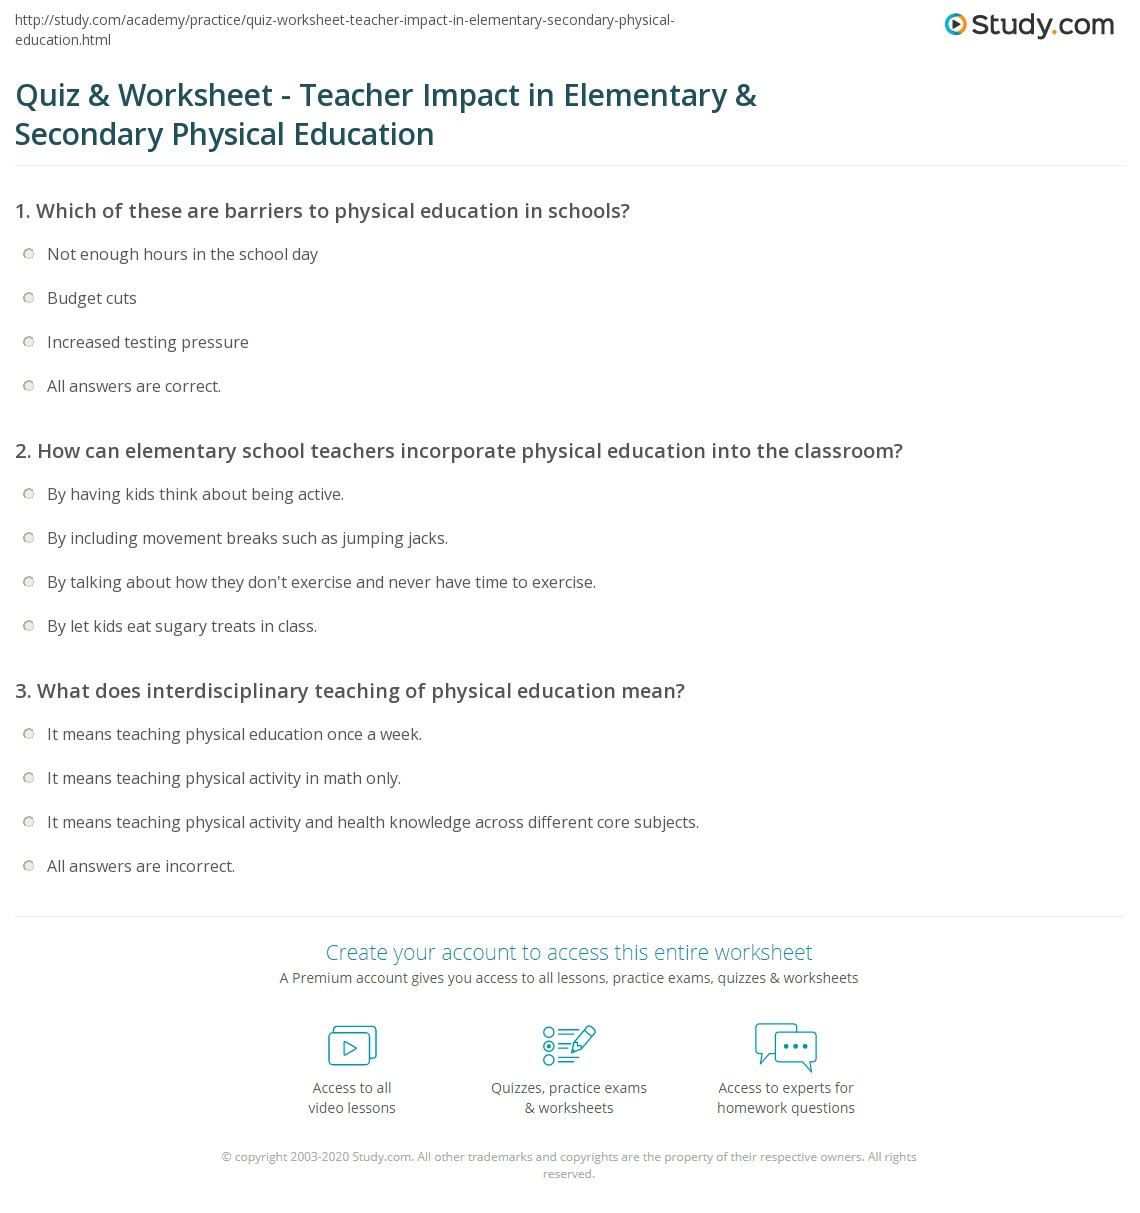 Worksheets Physical Education Worksheets For Middle School physical education worksheets ie worksheet quiz teacher impact in elementary secondary